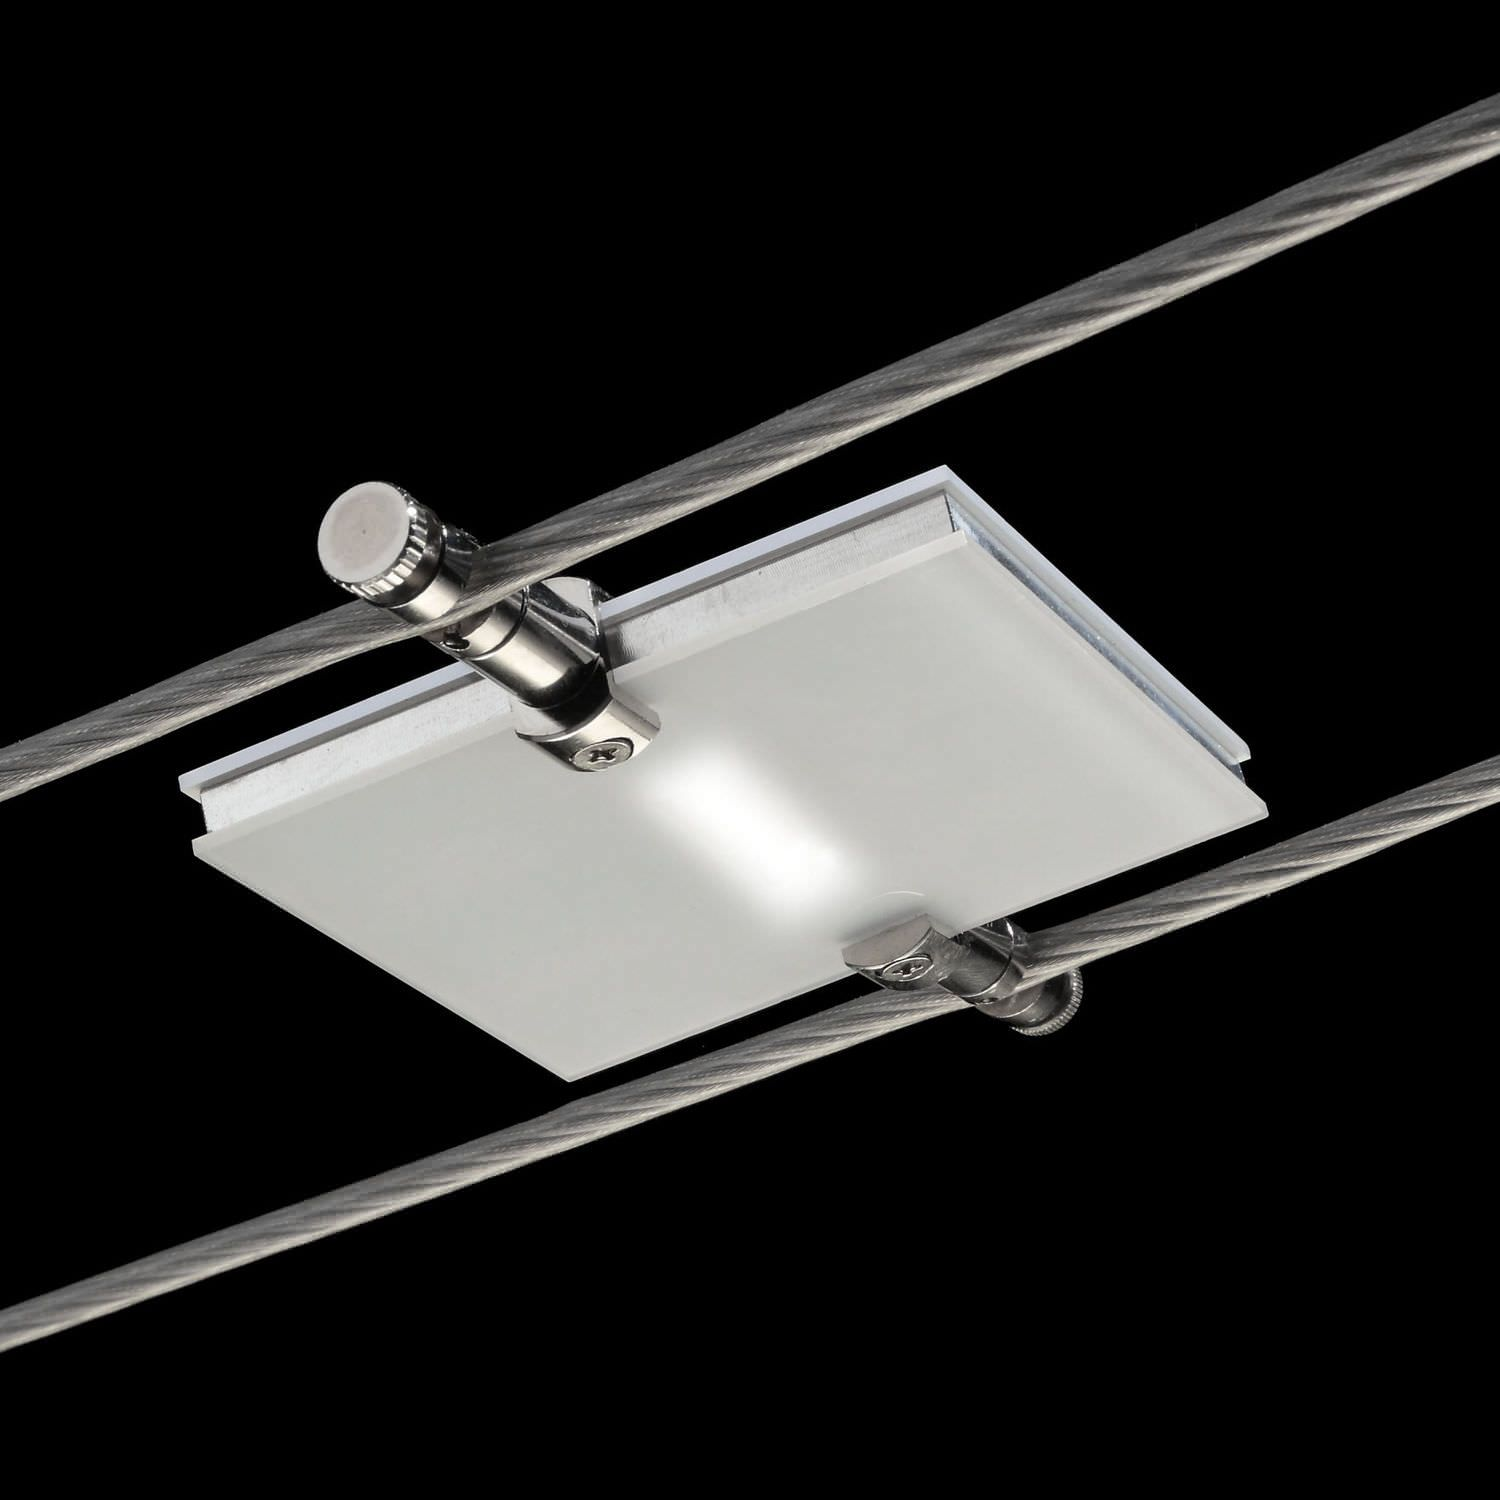 Led Light Design Best Cable Lighting Product